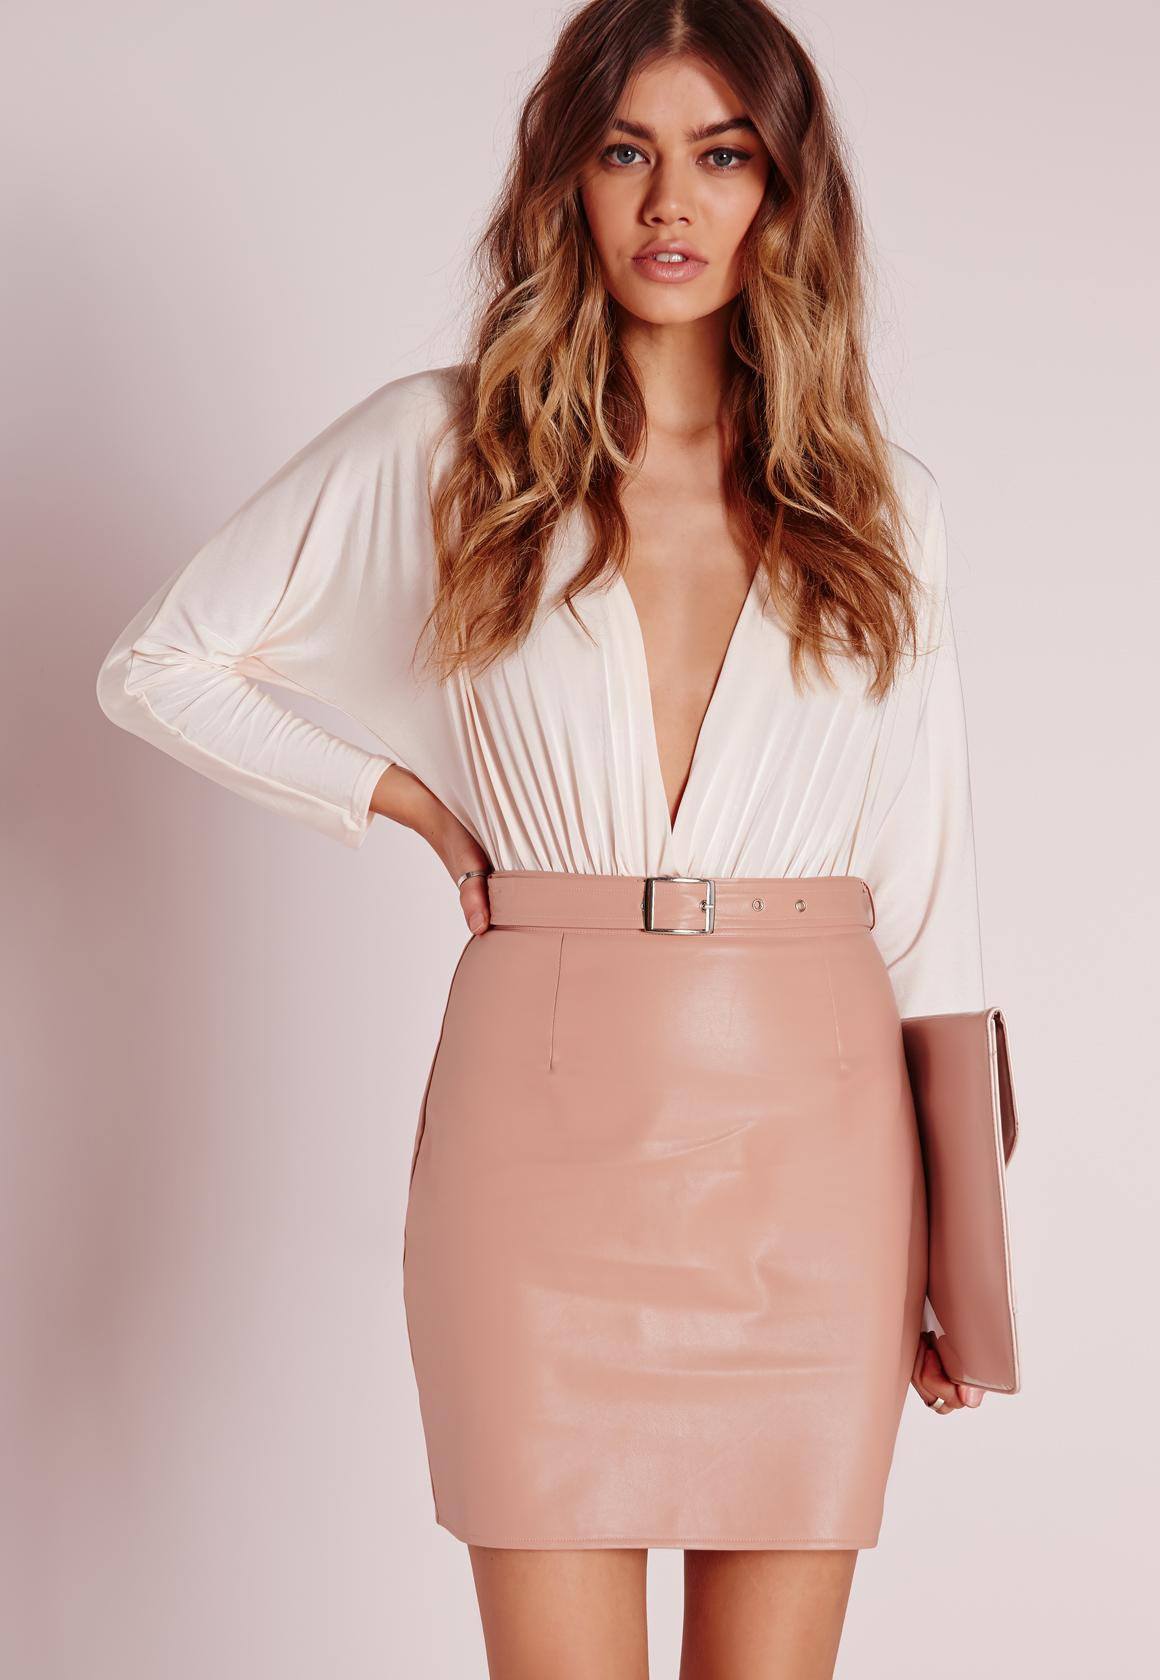 Buckle Detail Faux Leather Mini Skirt Nude Pink